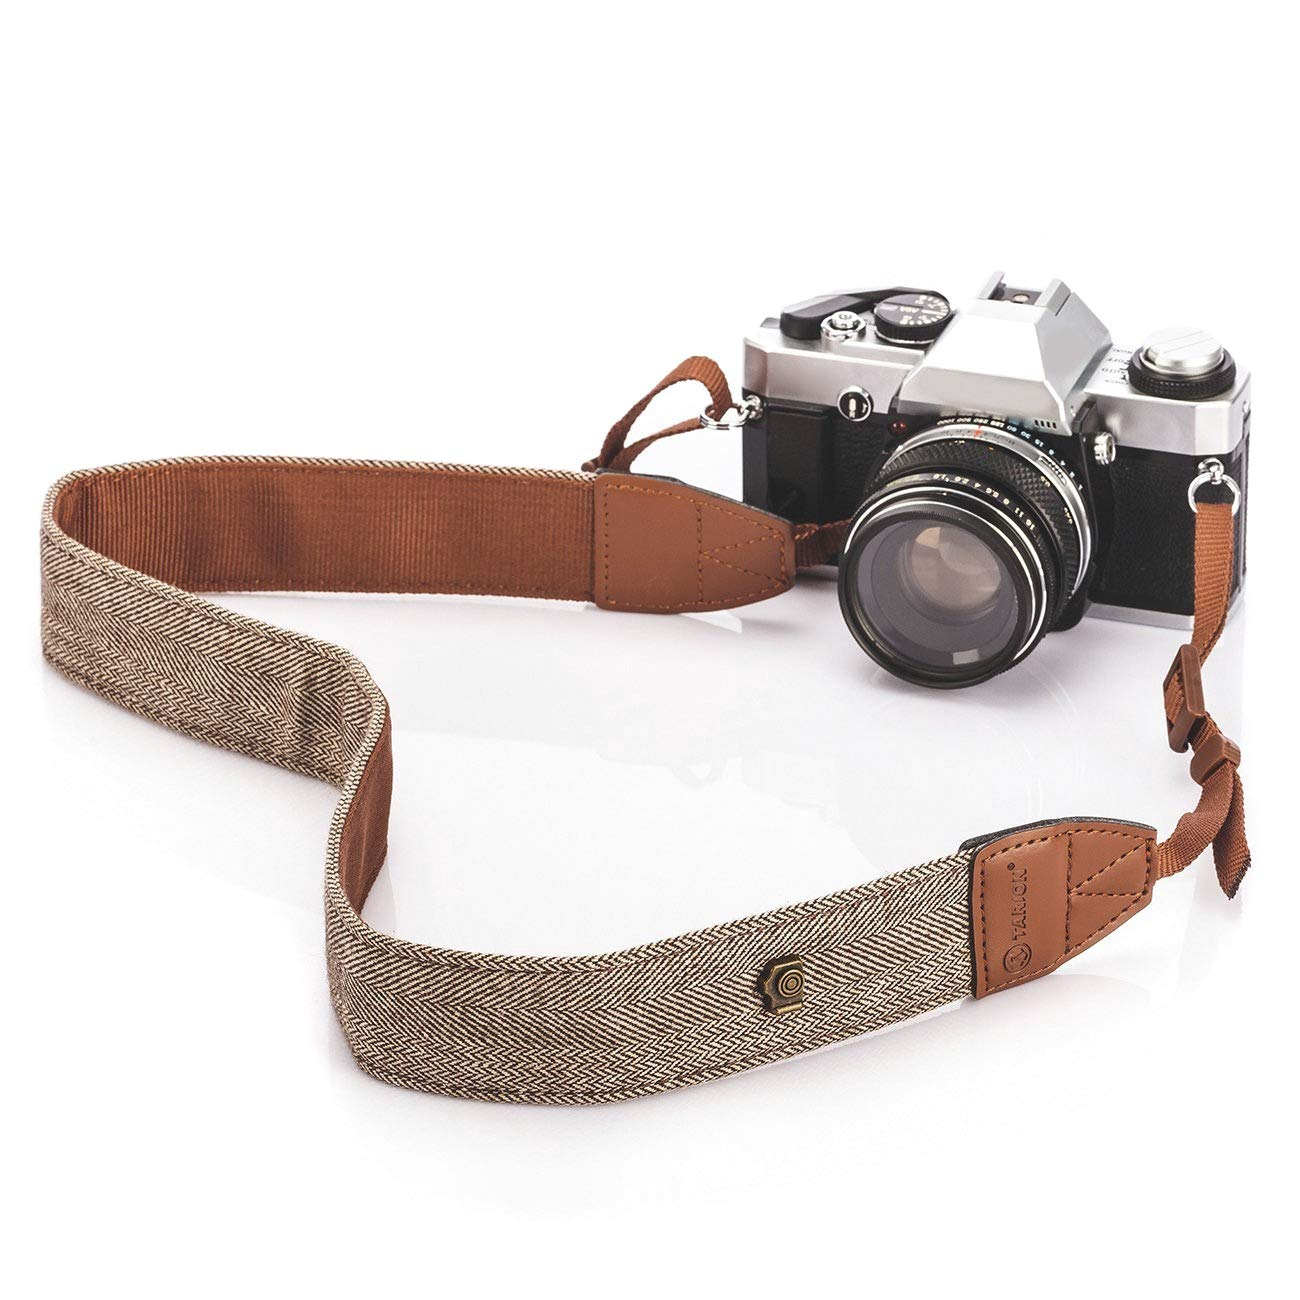 TARION Camera Shoulder Neck Strap Vintage Belt for All DSLR Camera Nikon Canon Sony Pentax Classic White and Brown Weave Bohemian-Strap-LYN-241Z